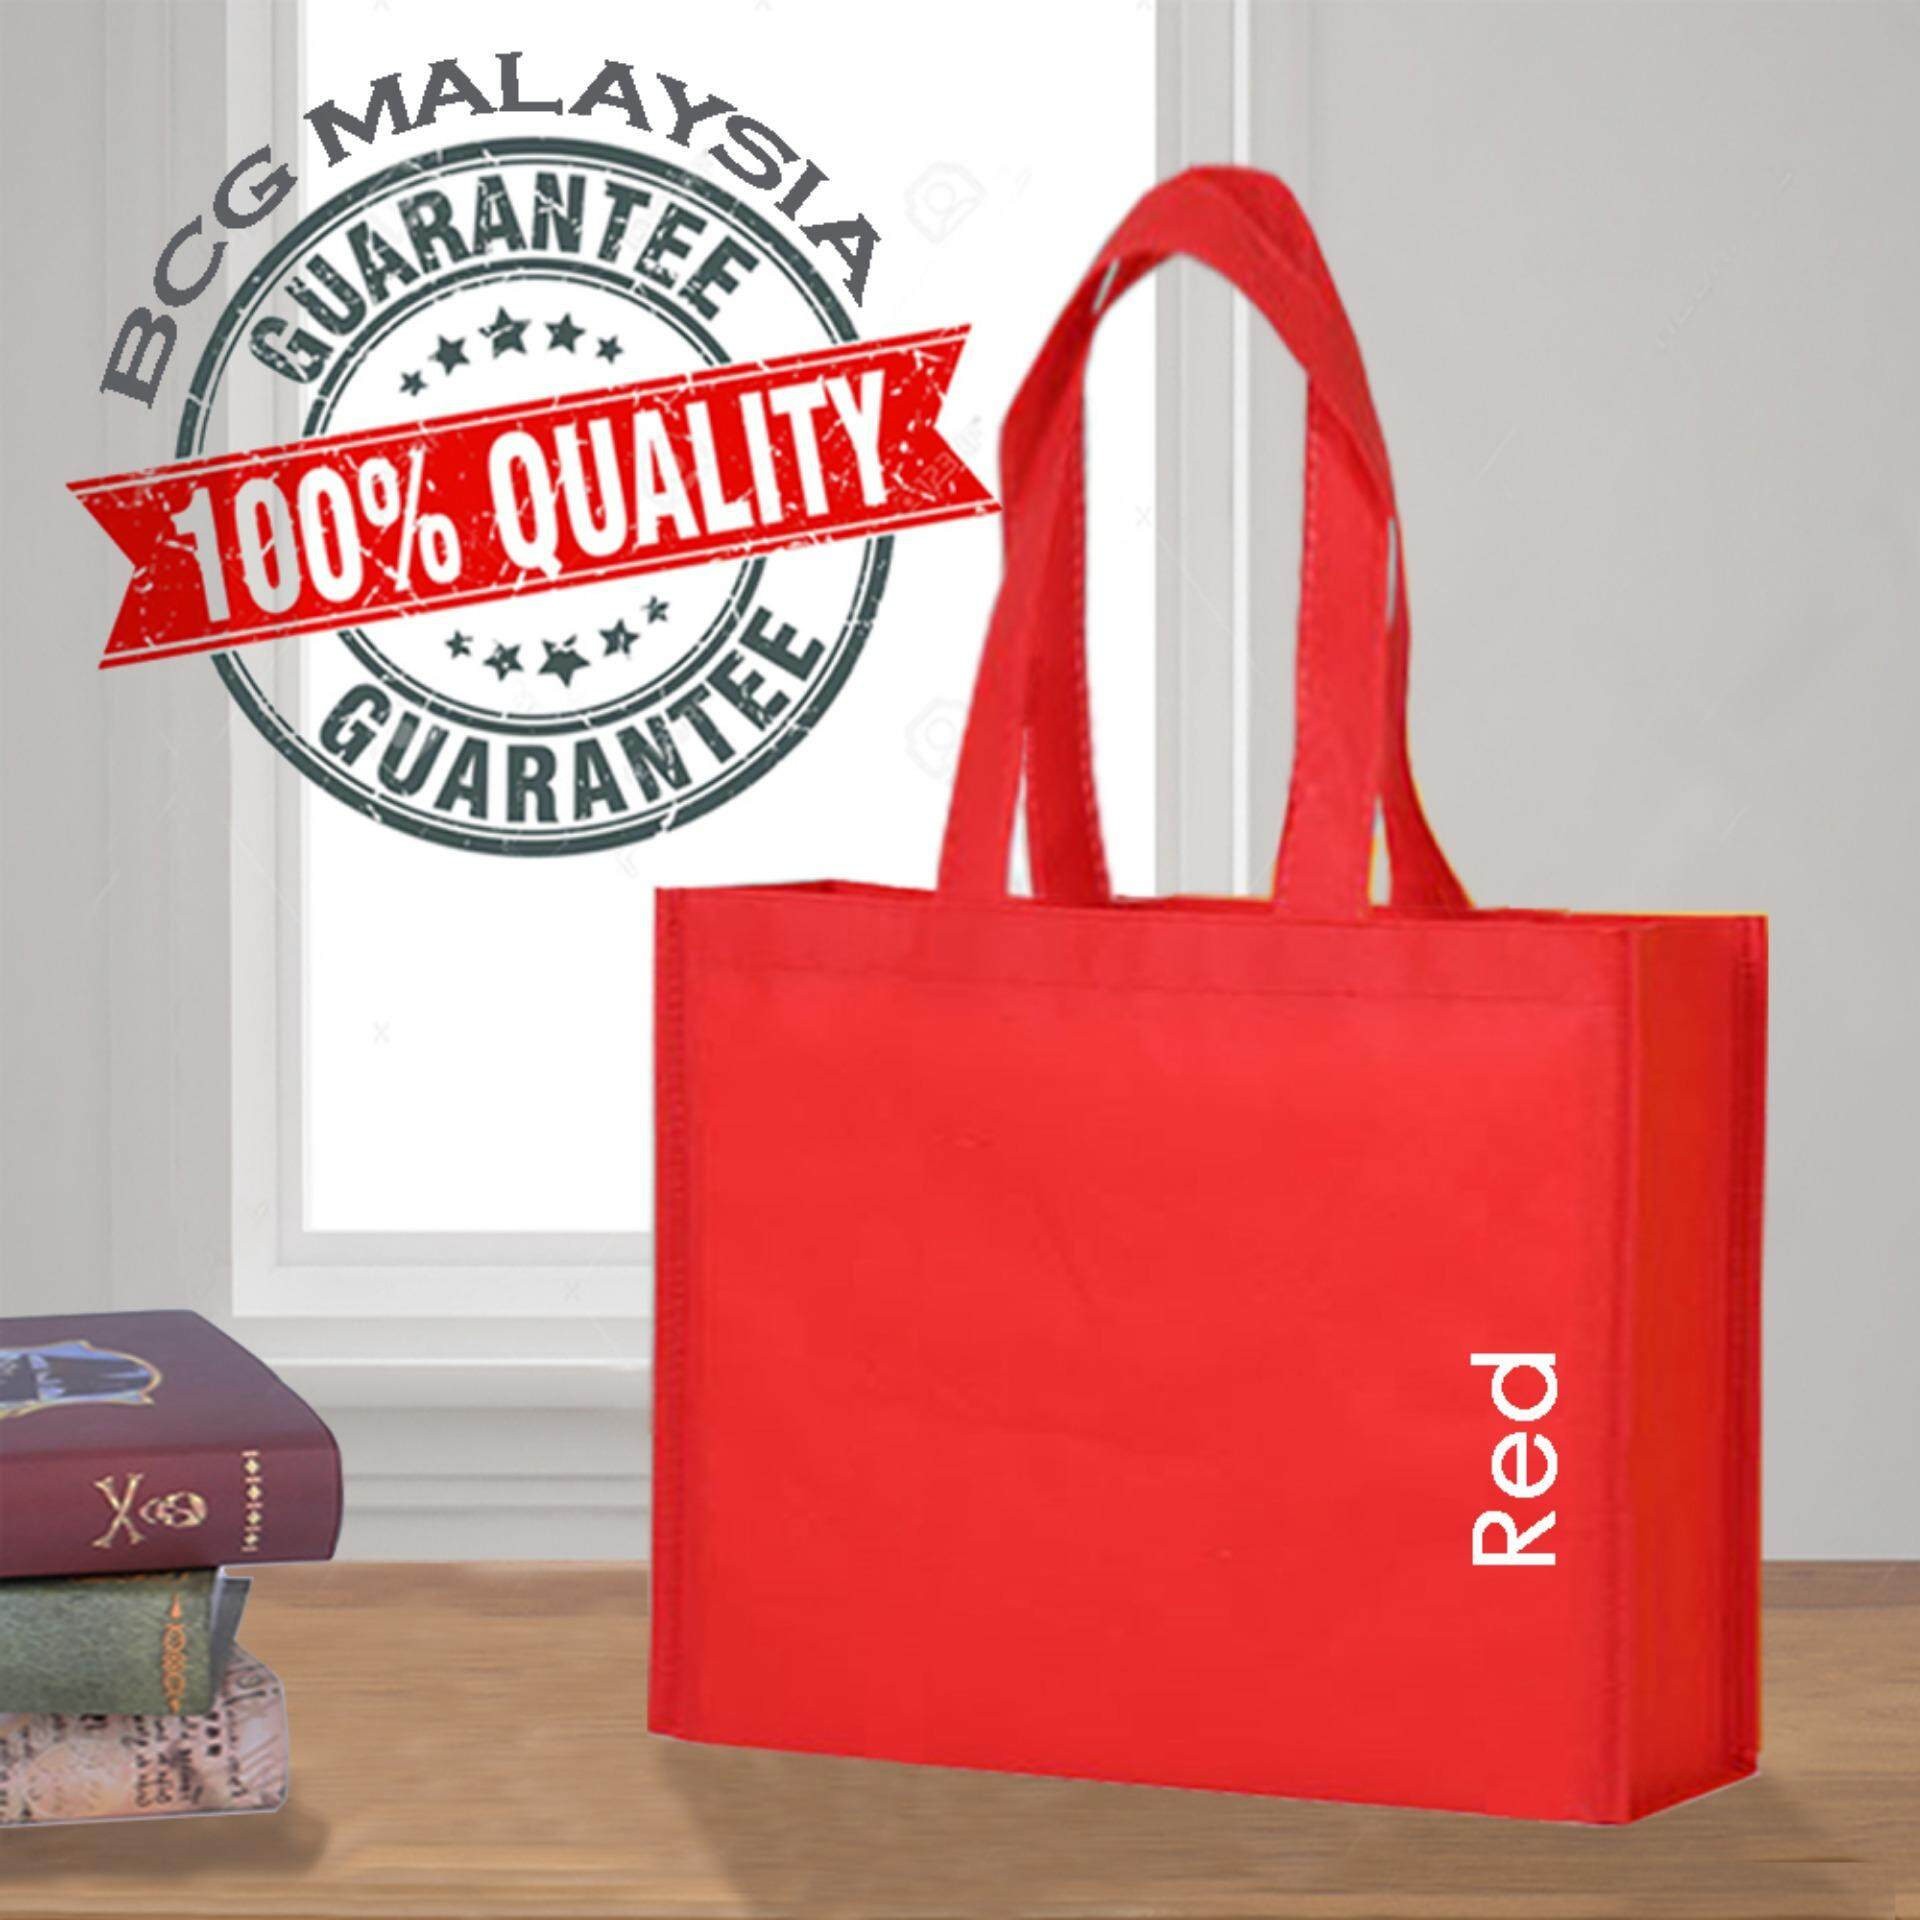 [Ready Stock] BCG Malaysia A3 Red Non Woven Bag Recycle Bag 100% Quality Assured